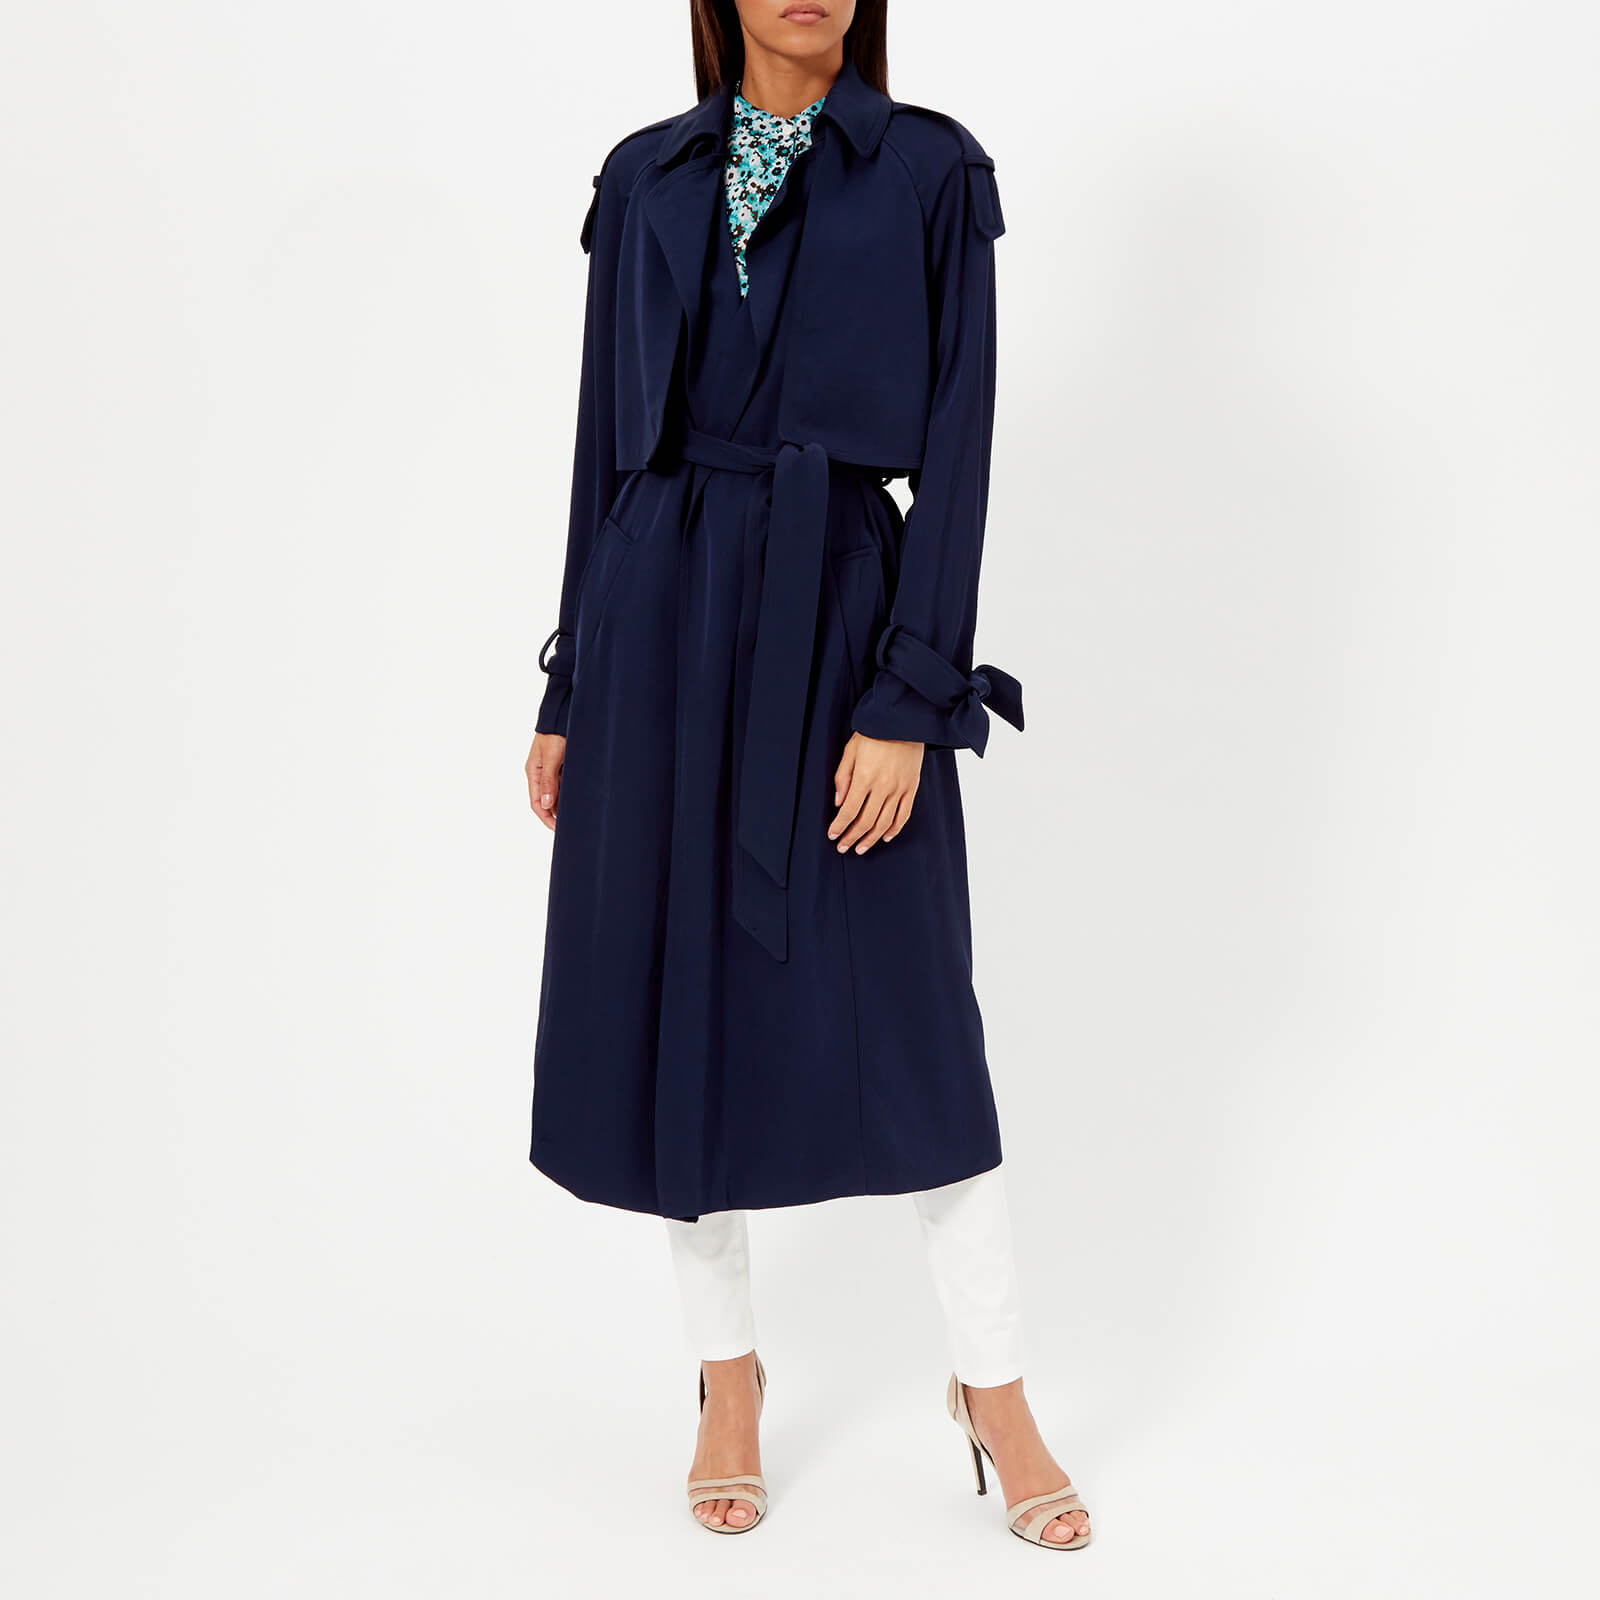 c4f80b1072 MICHAEL MICHAEL KORS Women's Drapey Trench Coat - True Navy - Free UK  Delivery over £50